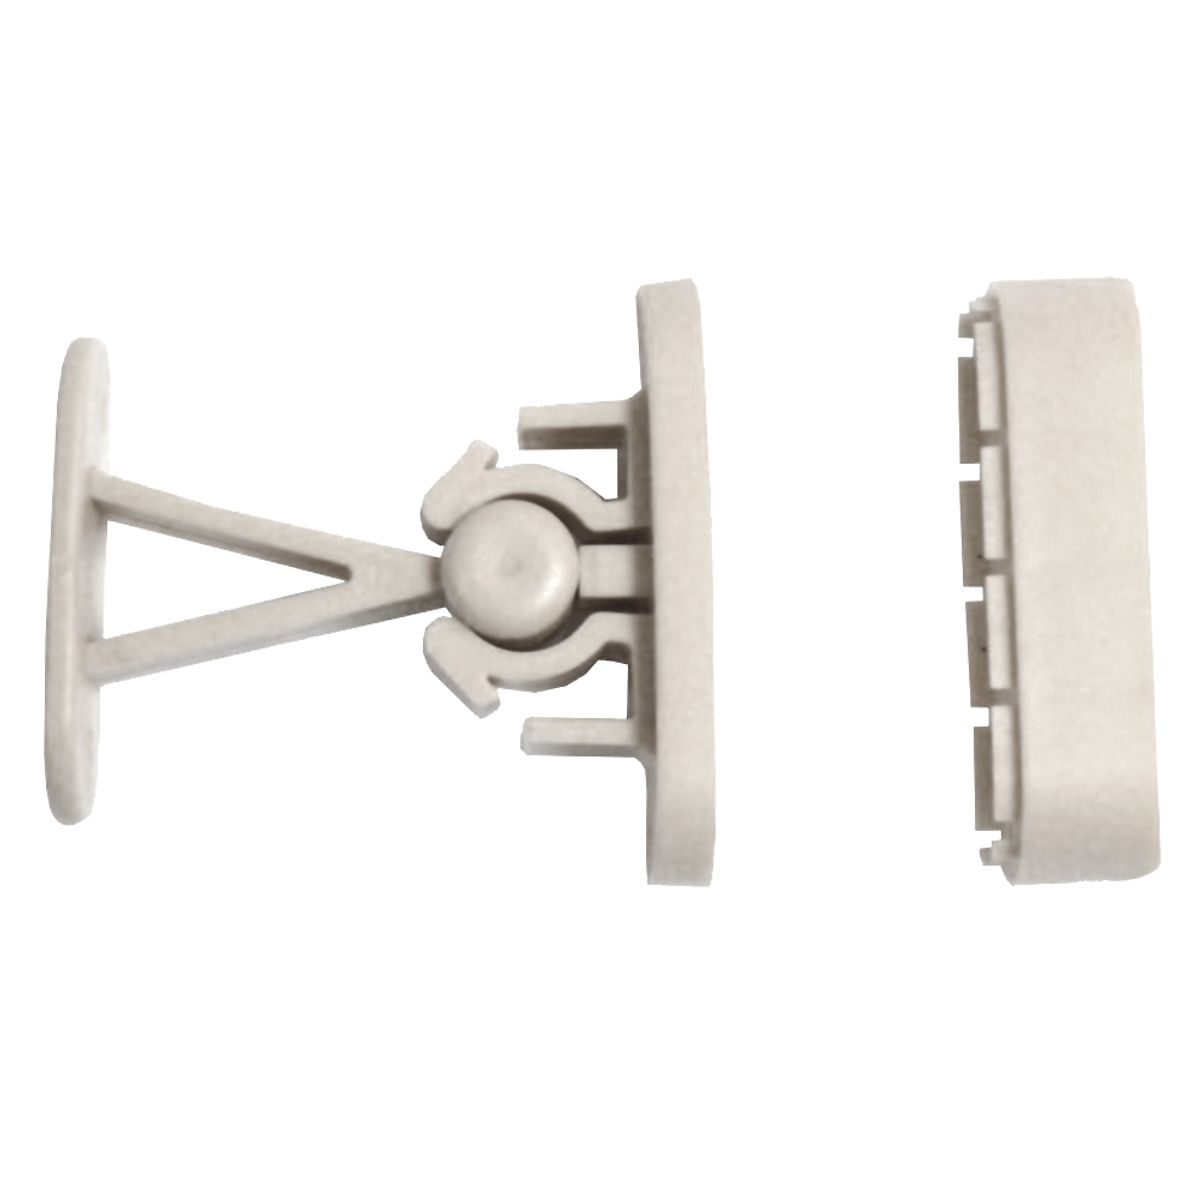 Viva Door Catch Kit White